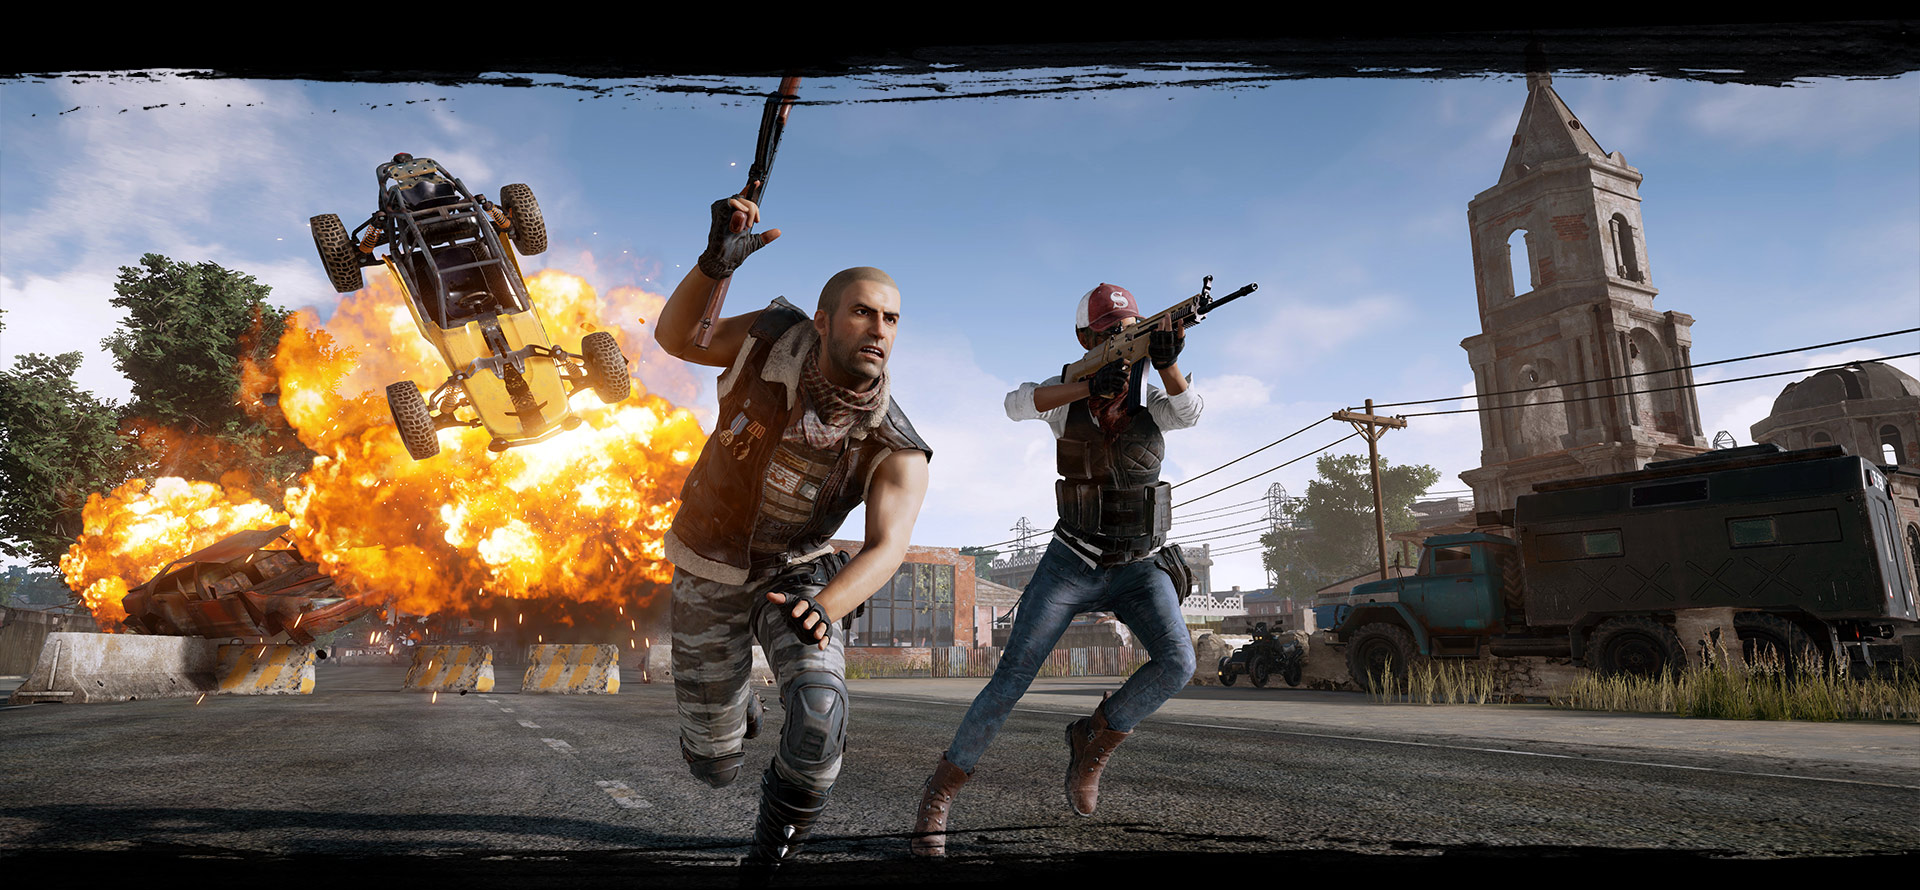 Players running through streets avoiding an explosion